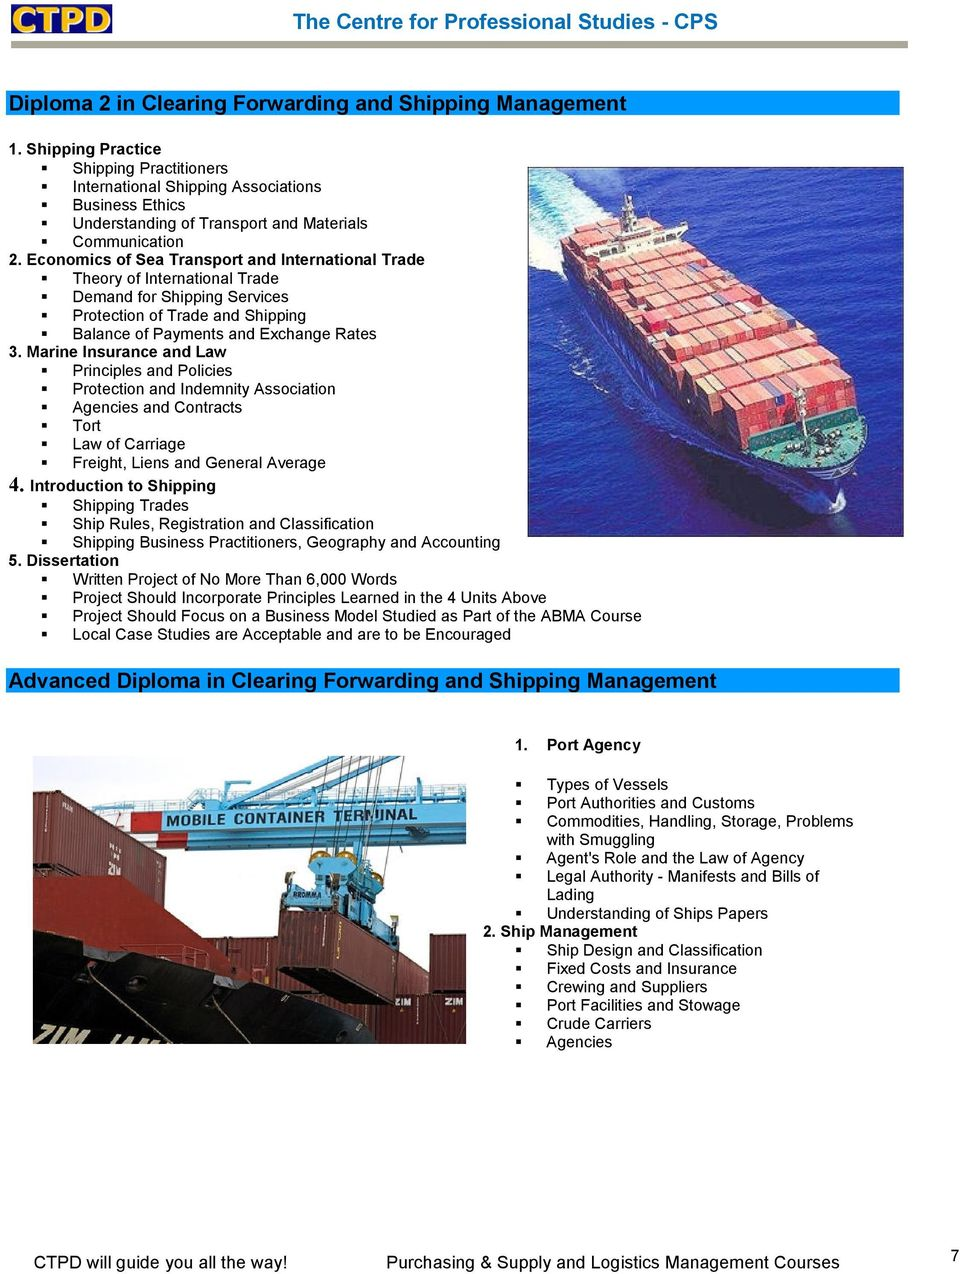 PURCHASING & SUPPLY AND LOGISTICS MANAGEMENT COURSES - PDF